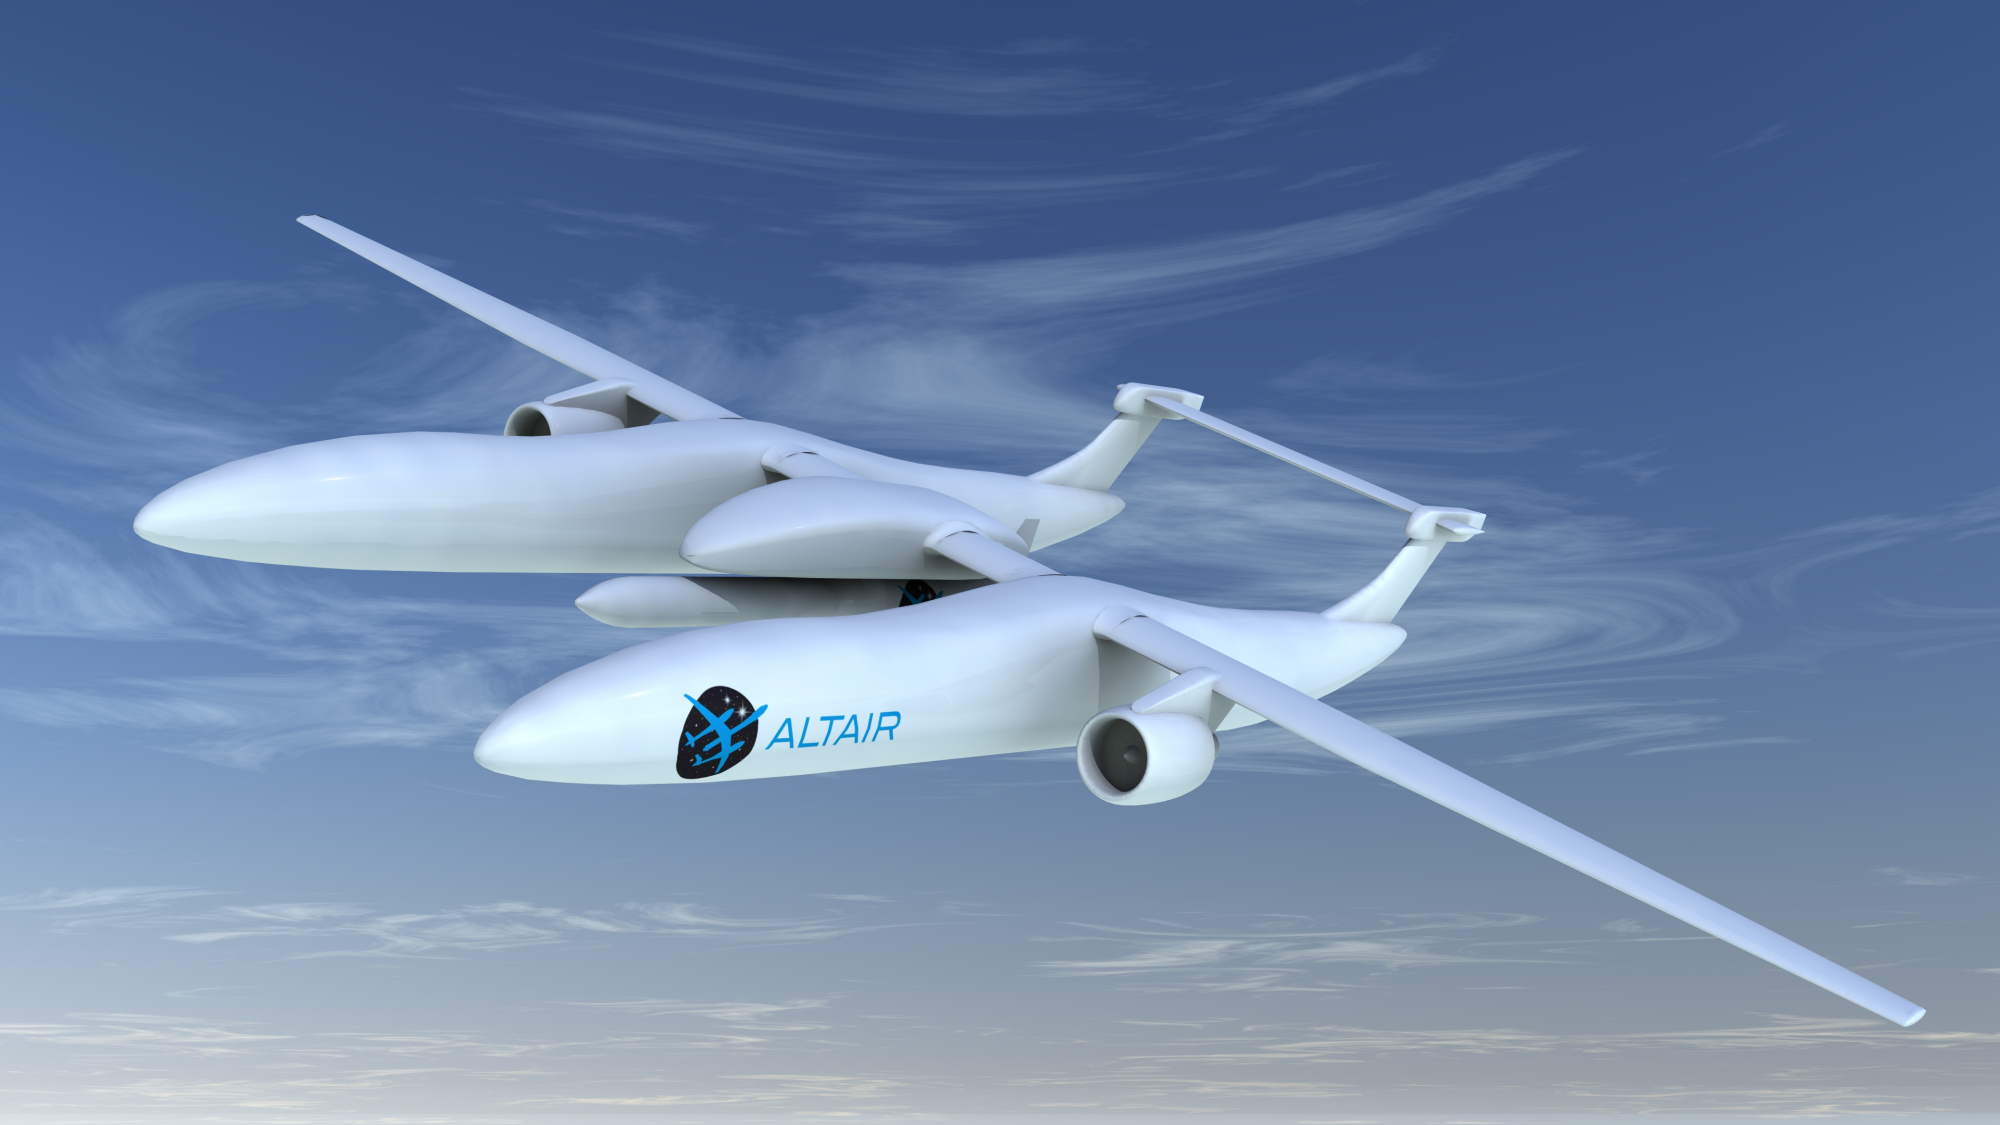 altair-eole-onera-cnes-commission-europe